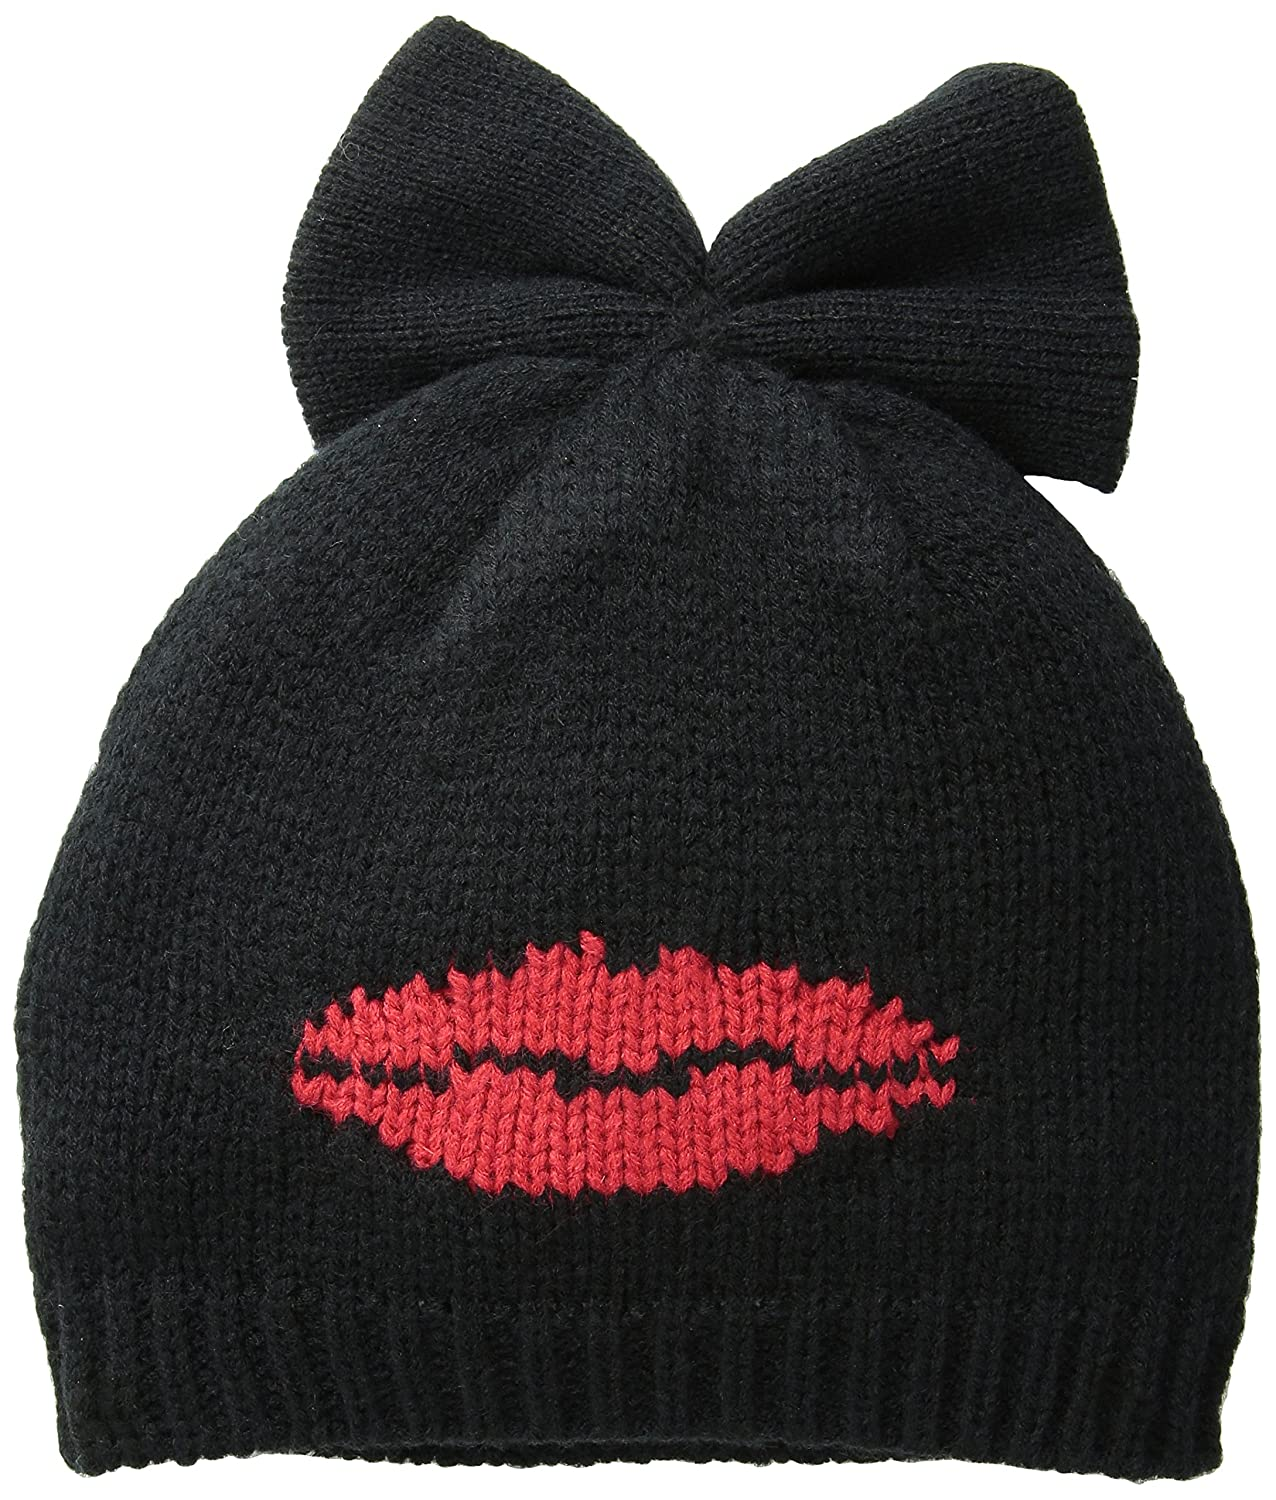 Betsey Johnson Womens Kiss and Tell Bow Beanie Red One Size Betsey Johnson Womens Accessories BJ18099-600